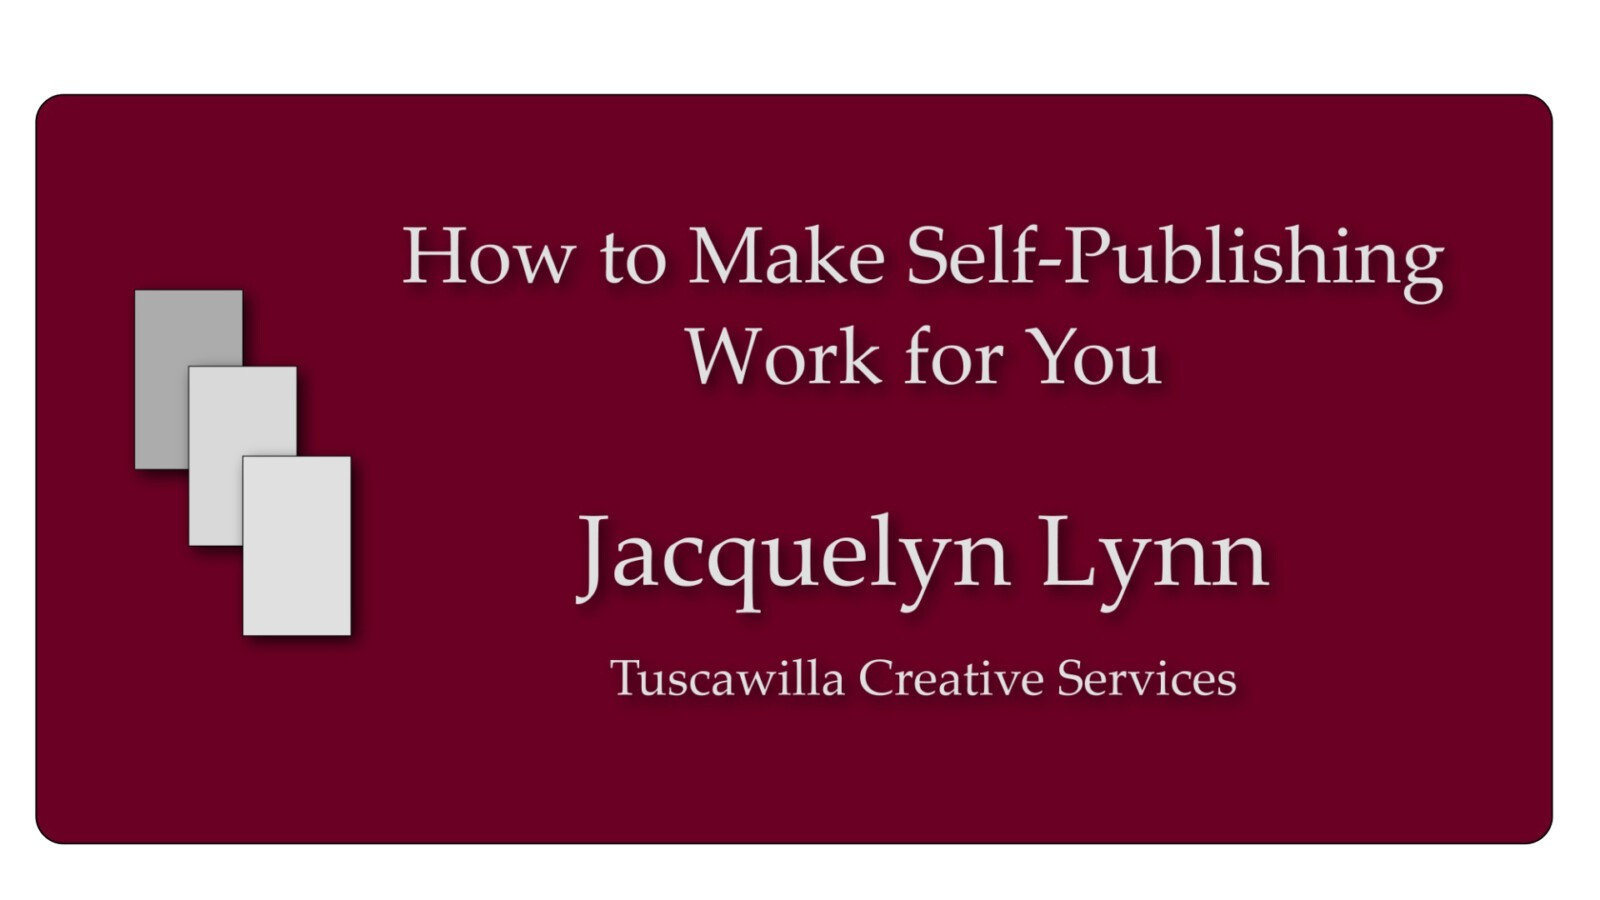 How to Make Self-Publishing Work for You - Jacquelyn Lynn